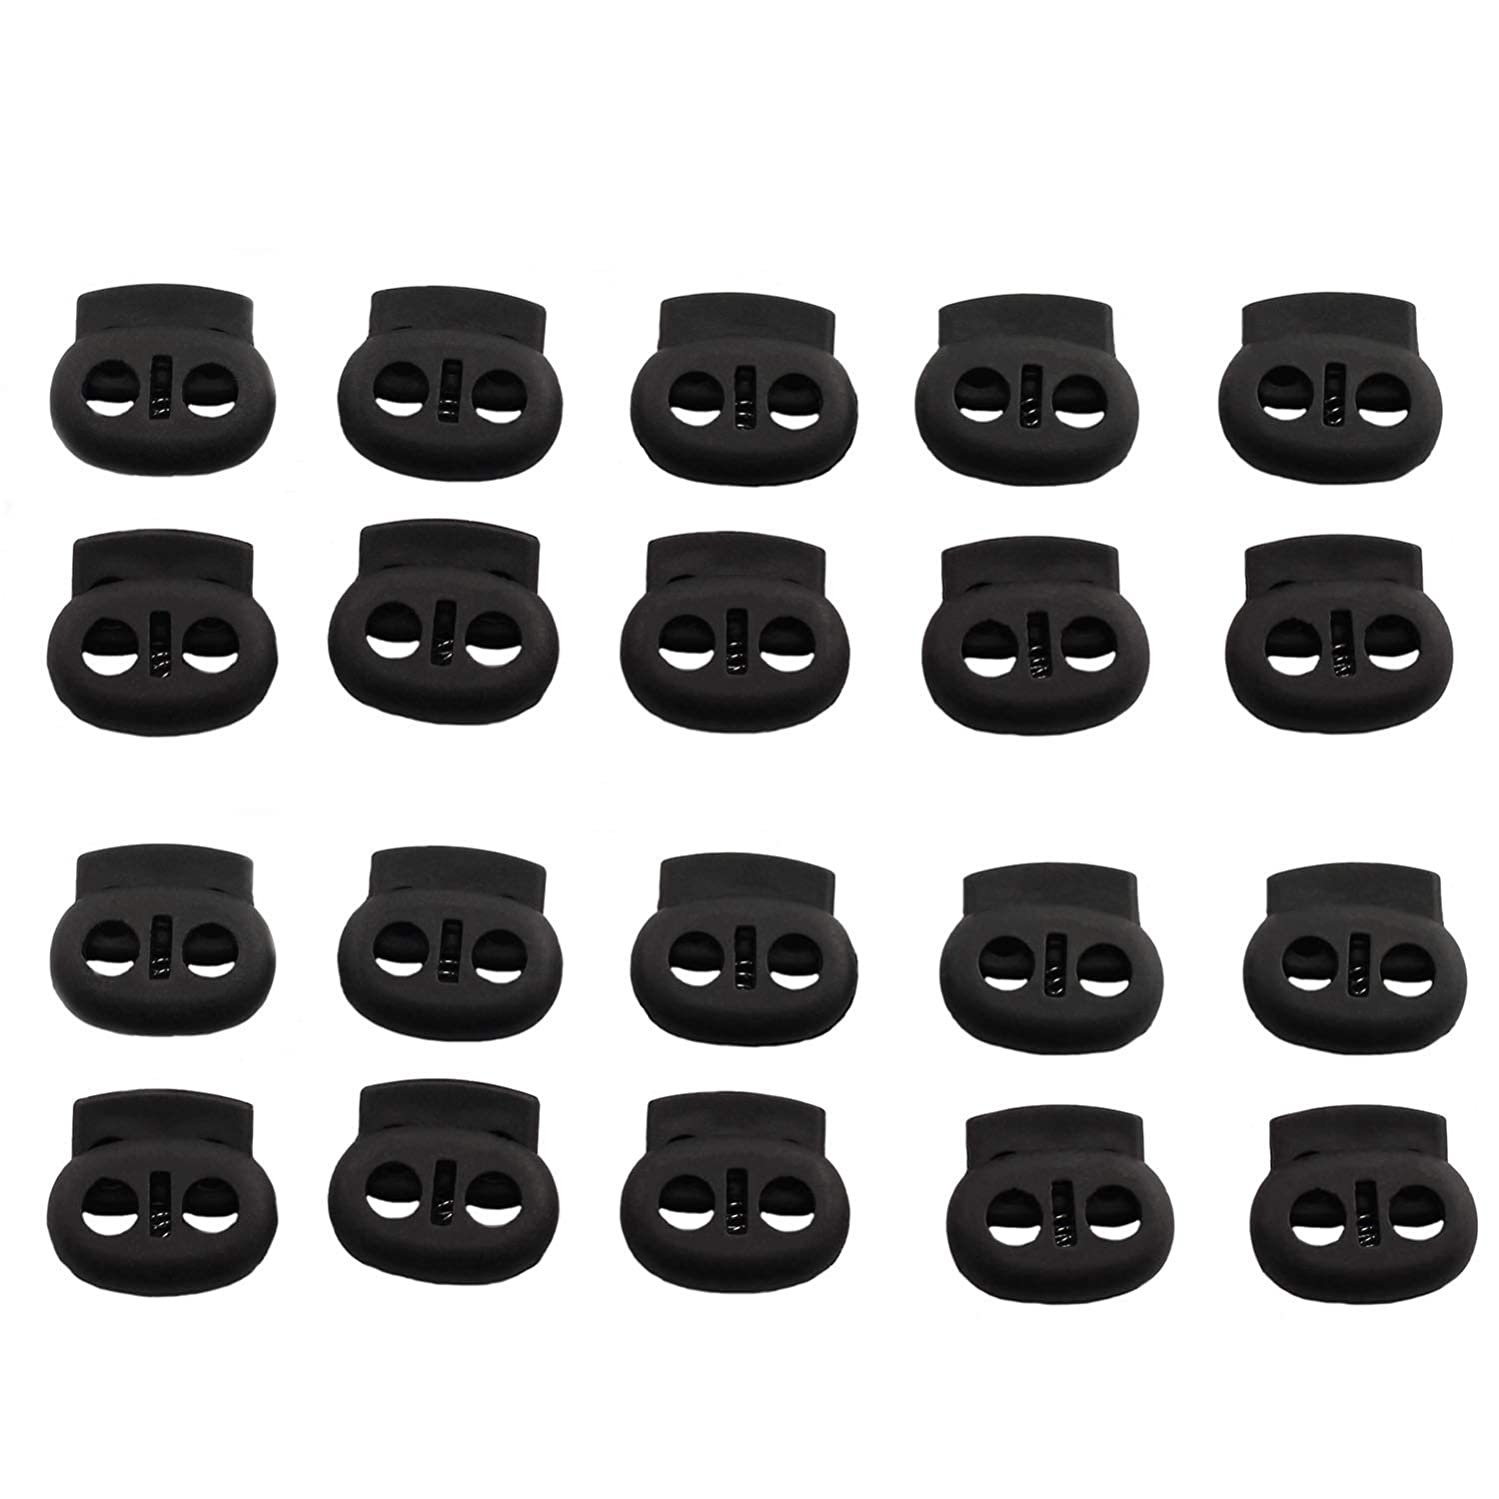 DGZZI 20pcs Black Dual Hole Cord Lock DIY Apparel Sewing Accessories Plastic Spring Loaded Fastener Bungee Rope Toggle Stopper Toggle Clip 19x17mm